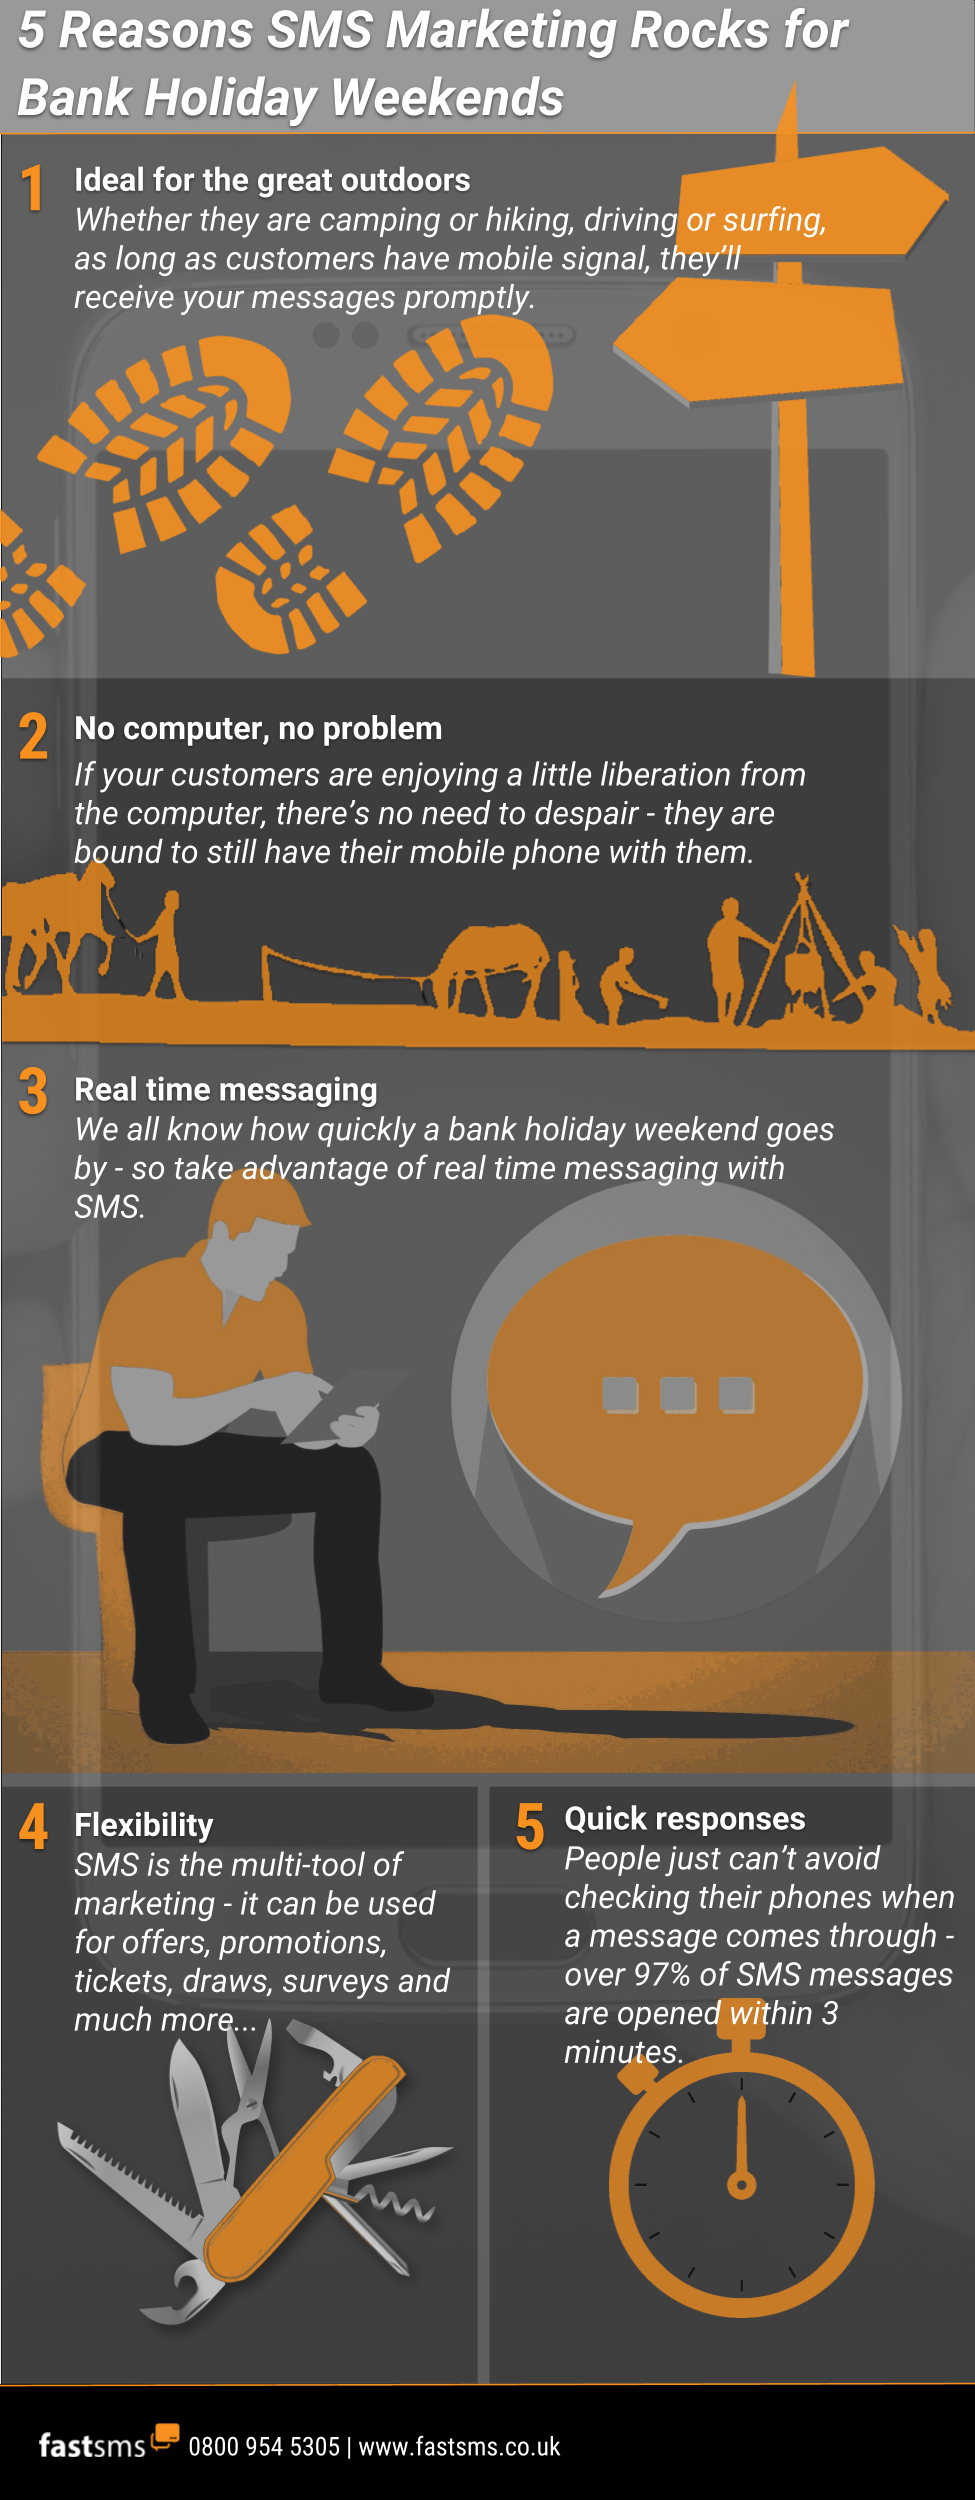 5 Reasons SMS Marketing Rocks for Bank Holiday Weekends - Infographic